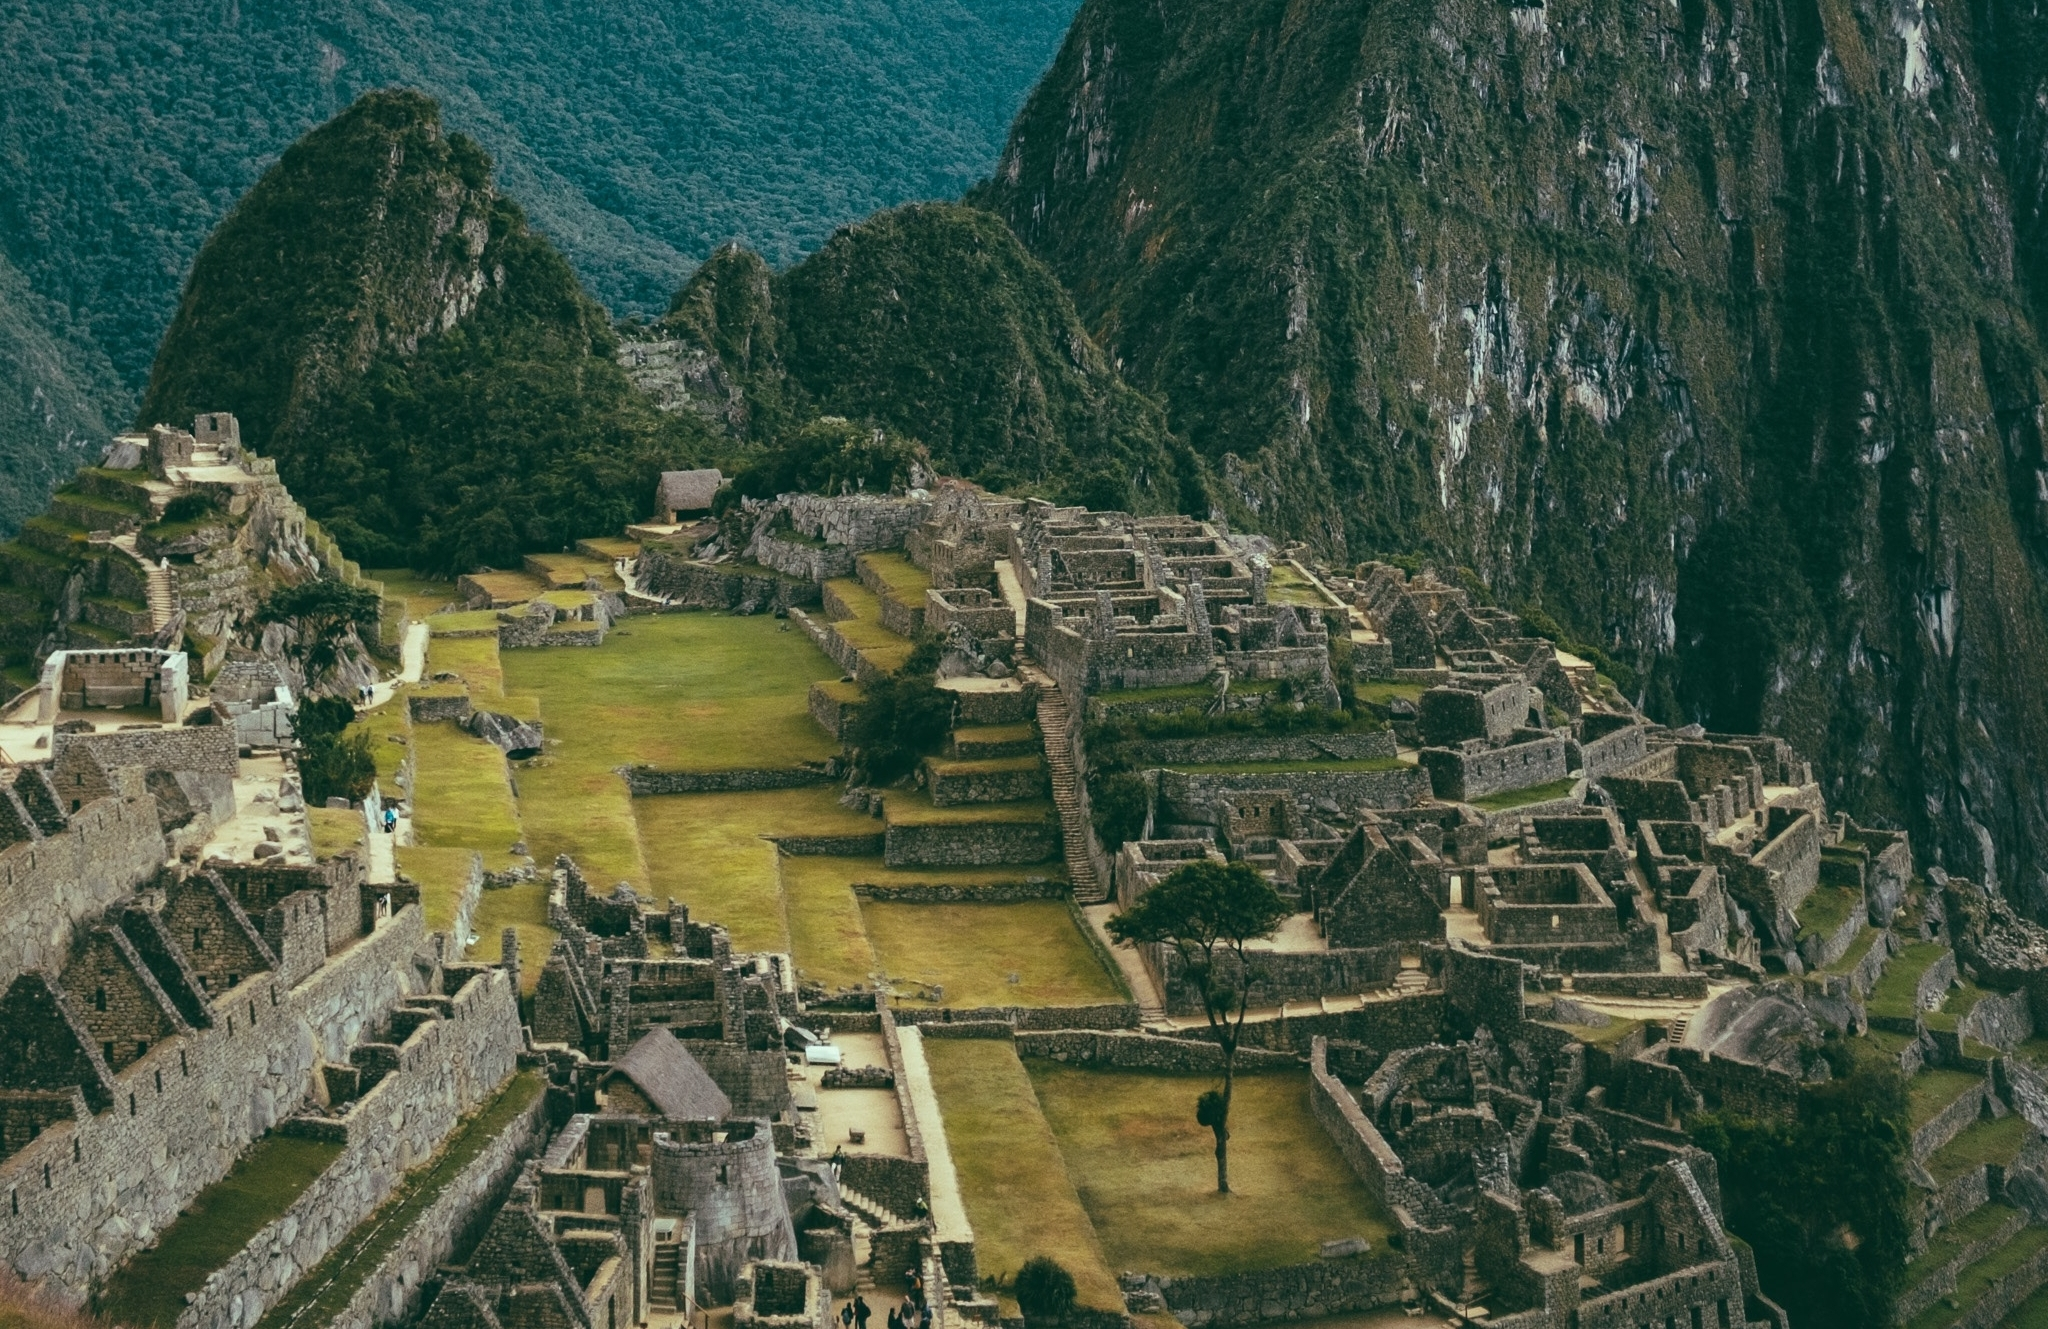 Machu Picchu   One of the new 7 wonders of the world   Learn More